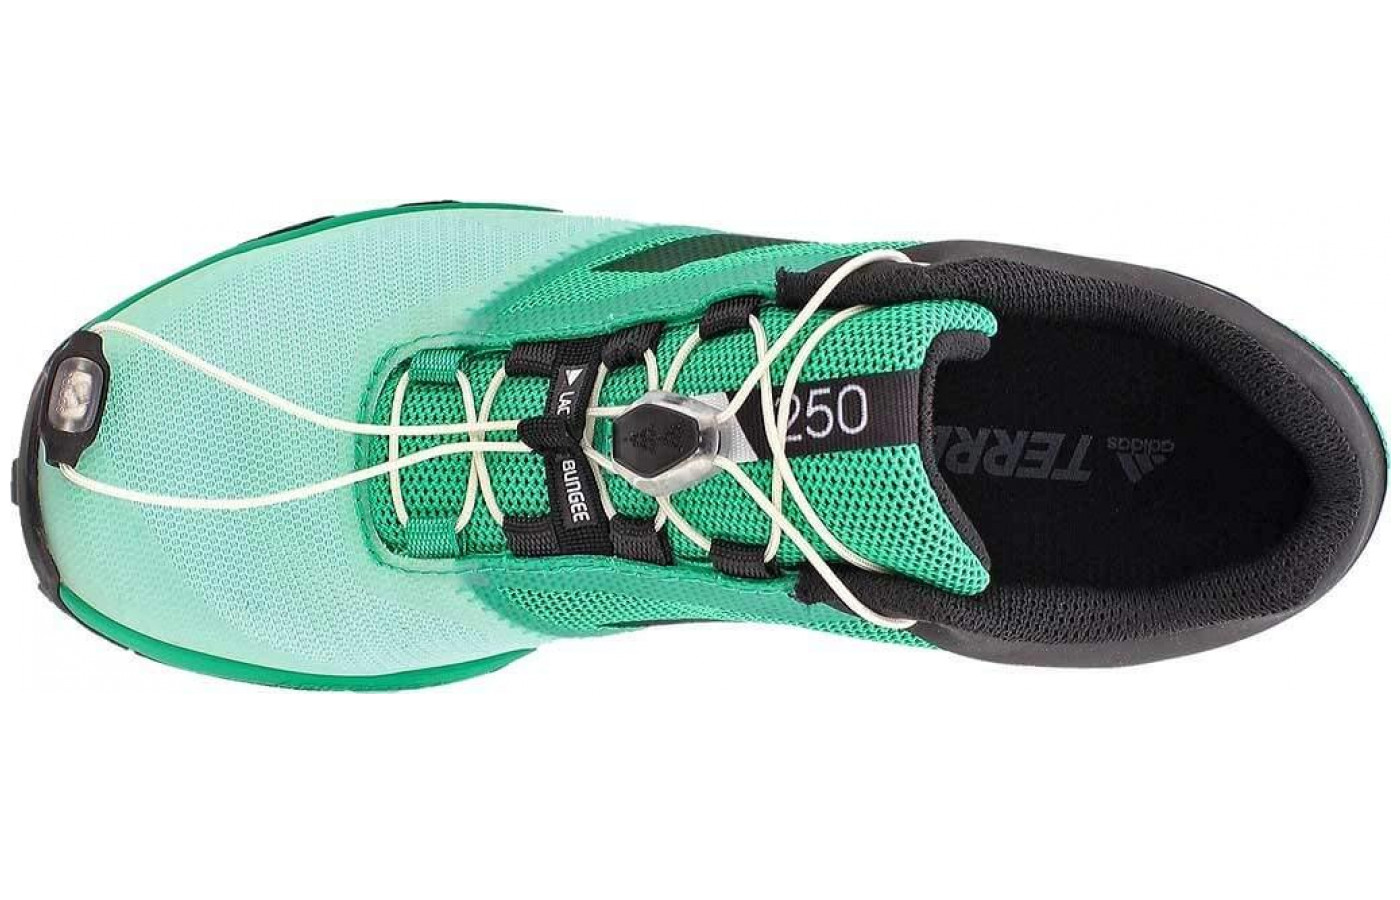 The lacing system is a secure bungee system.